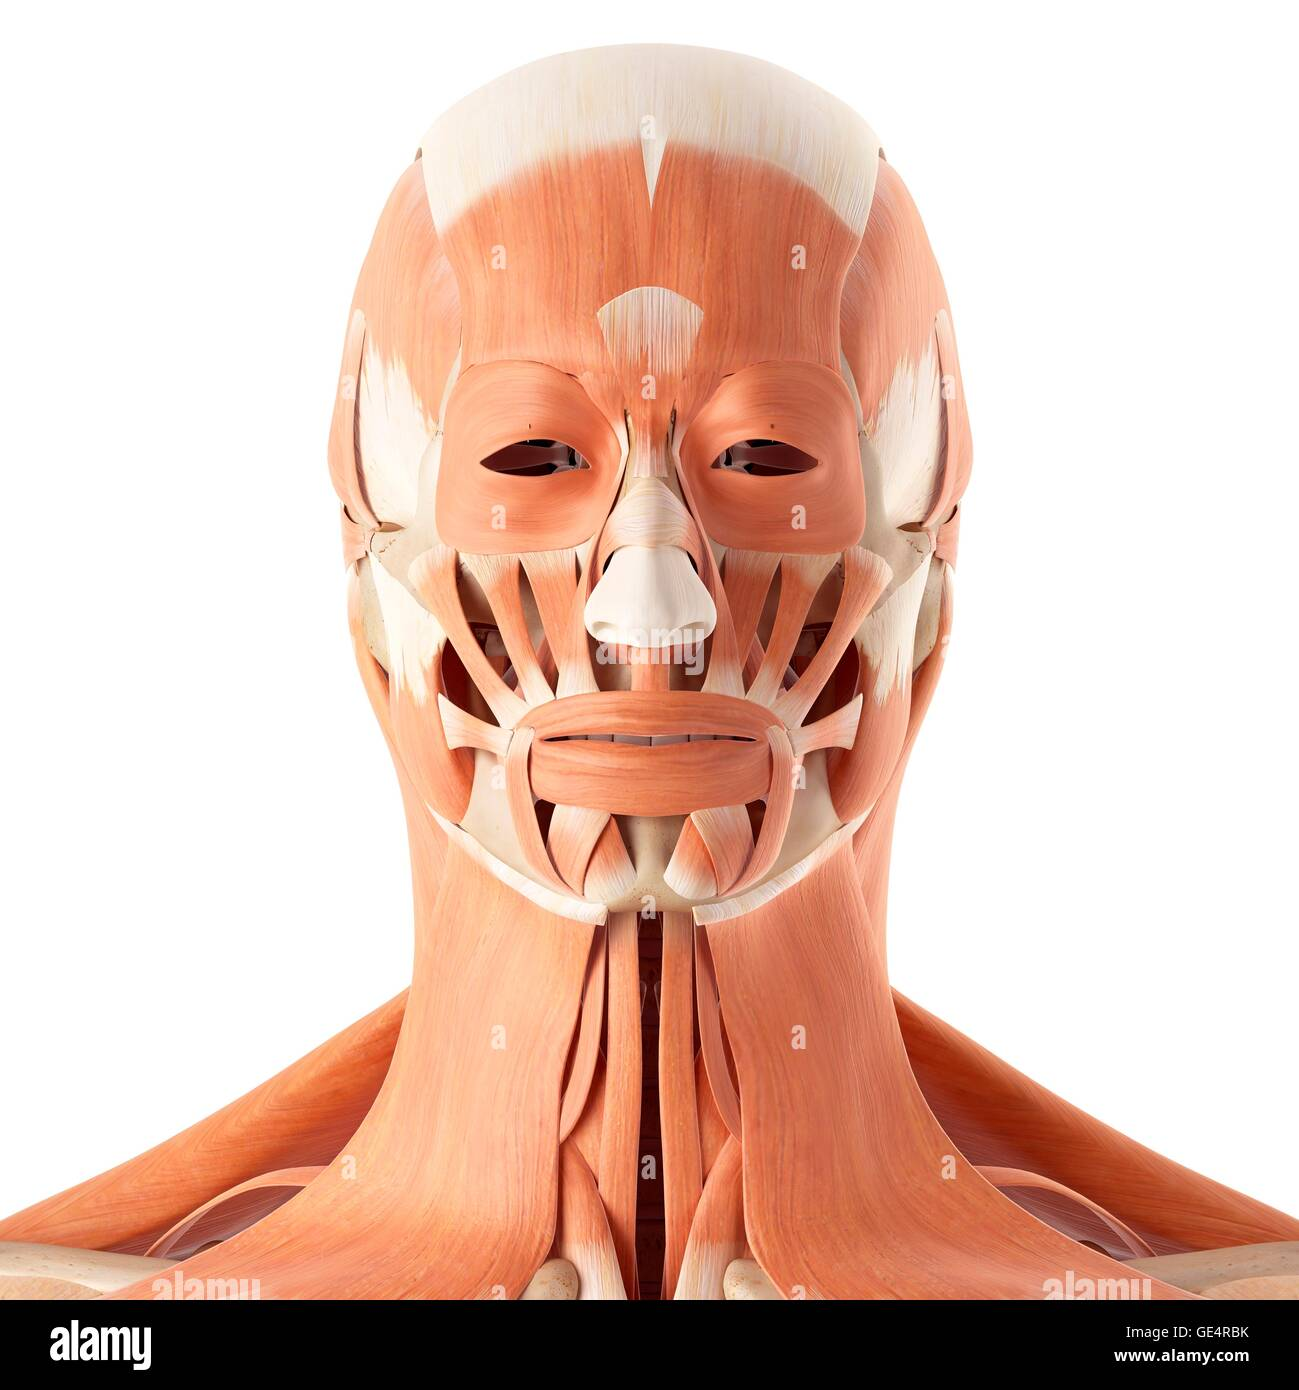 Picture of facial muscles